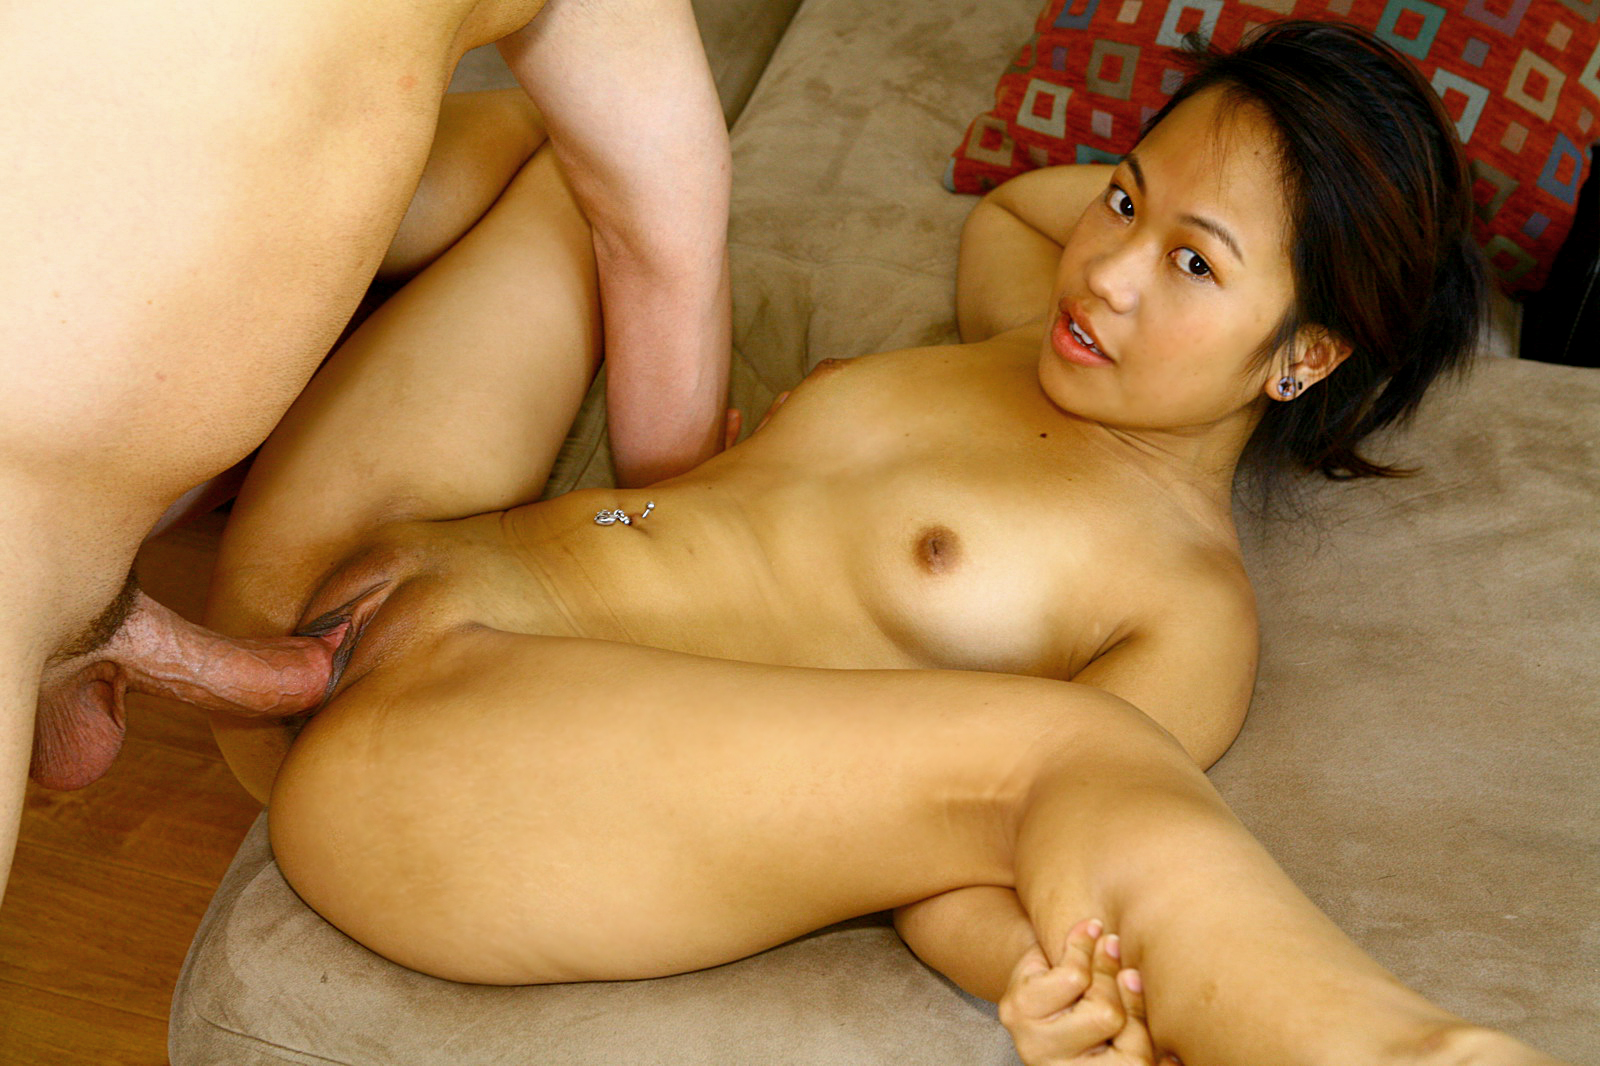 White girls fucking asian